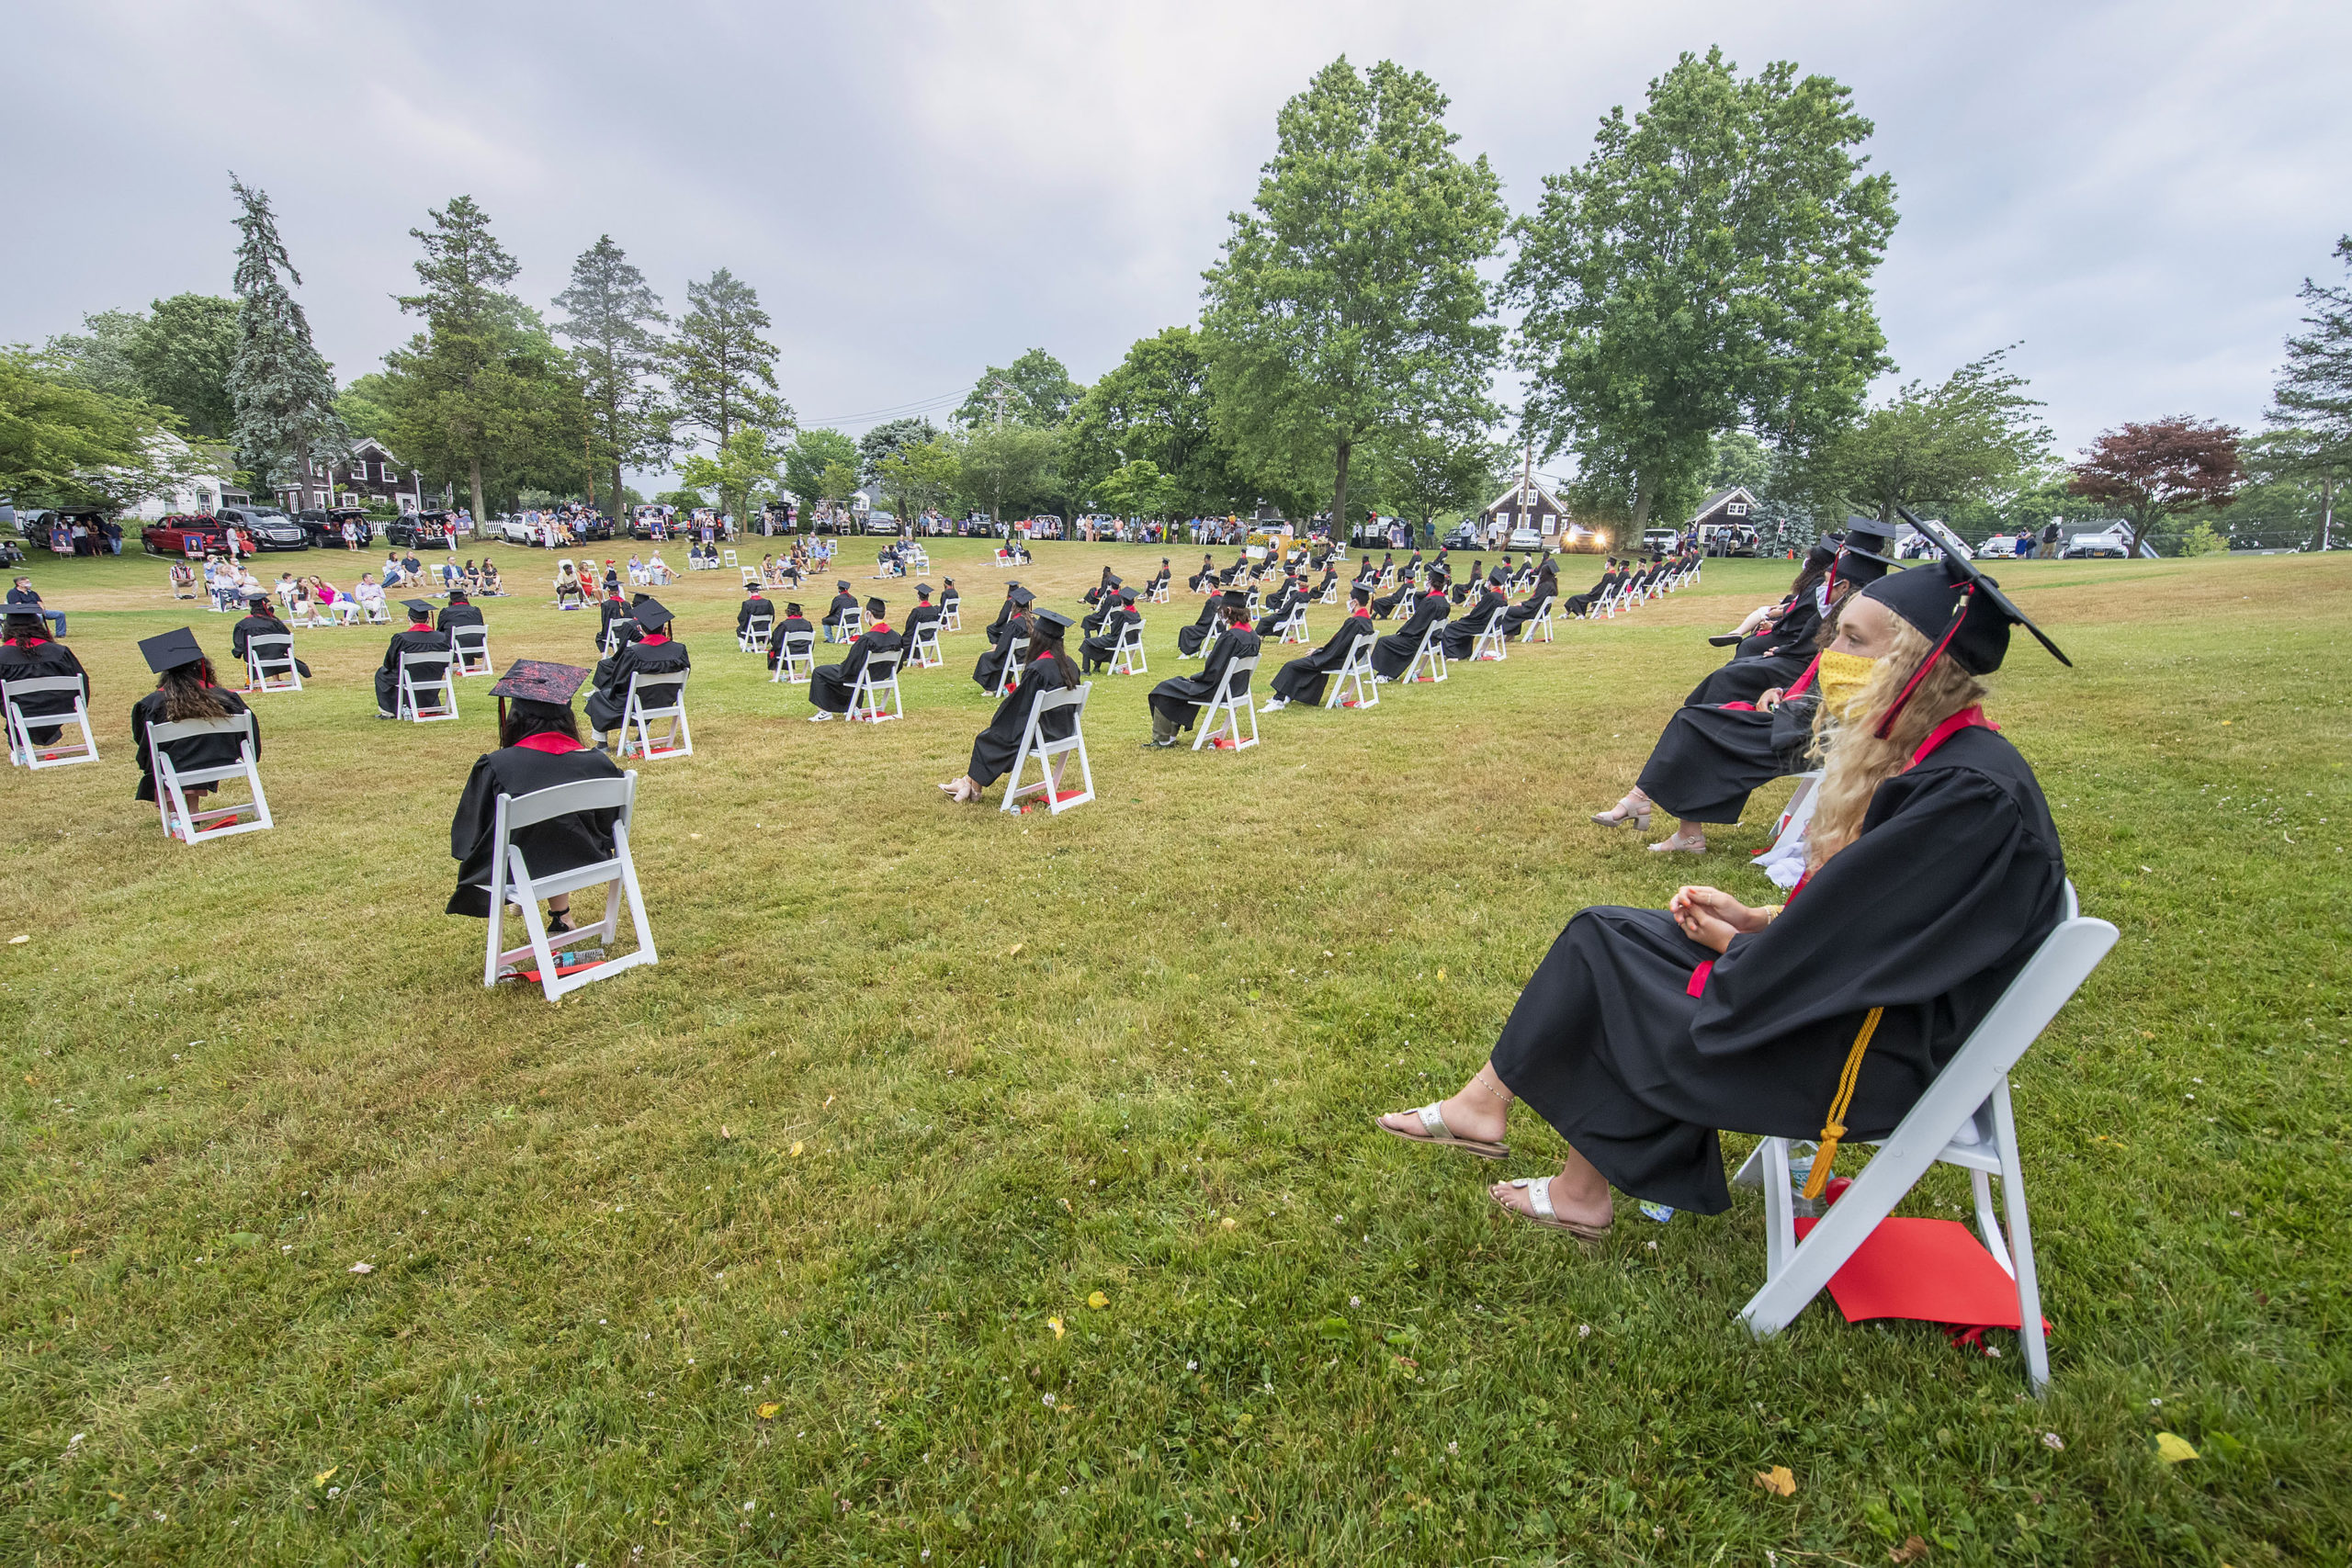 Senior Halle Kneeland watches the proceedings during the Pierson High School 2020 Commencement Ceremony at Pierson High School on Saturday.